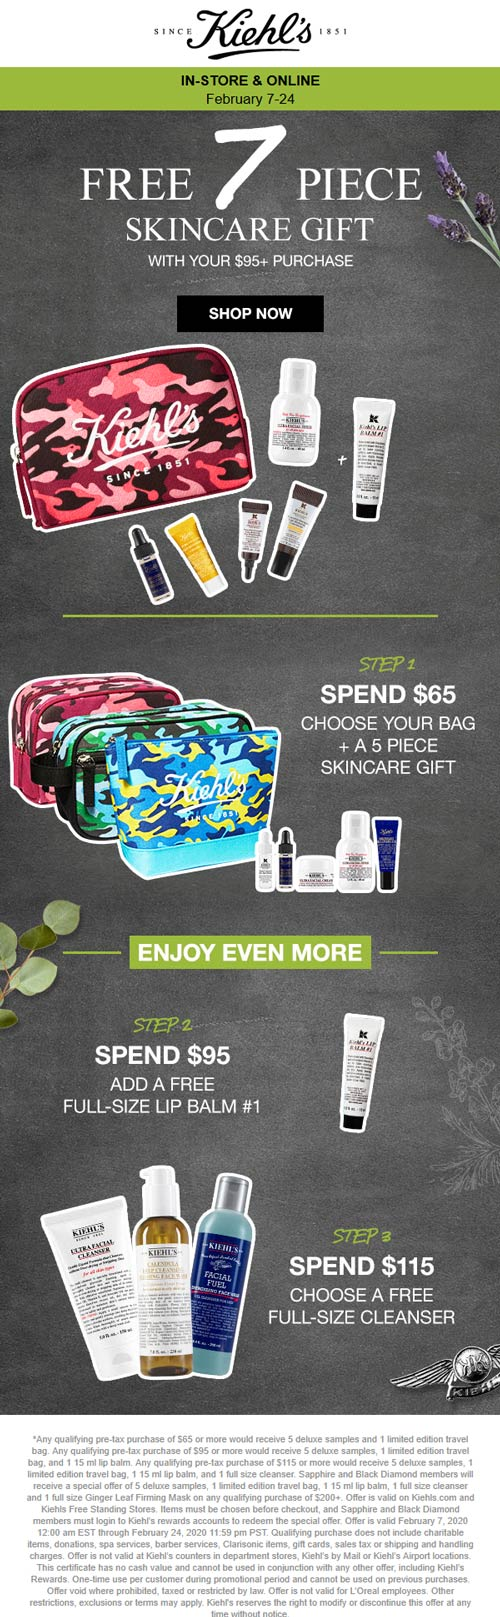 Kiehls coupons & promo code for [February 2020]